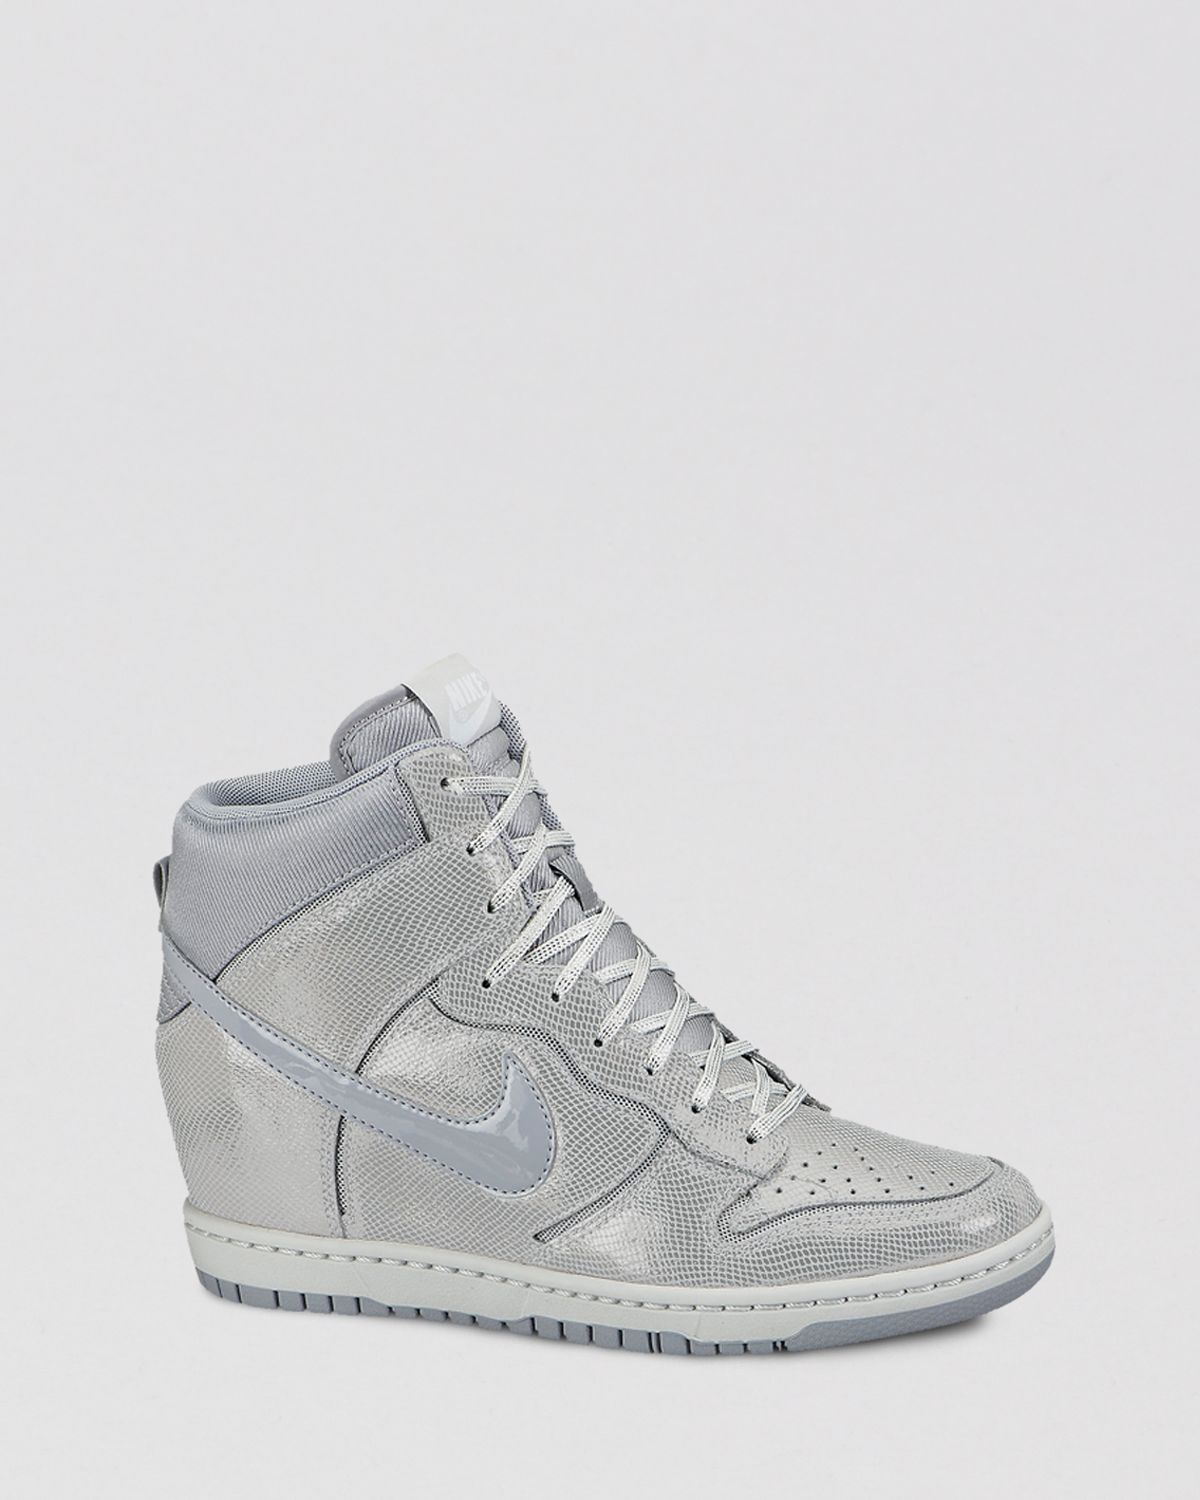 Nike Wedge Sneakers for Women - Bing images